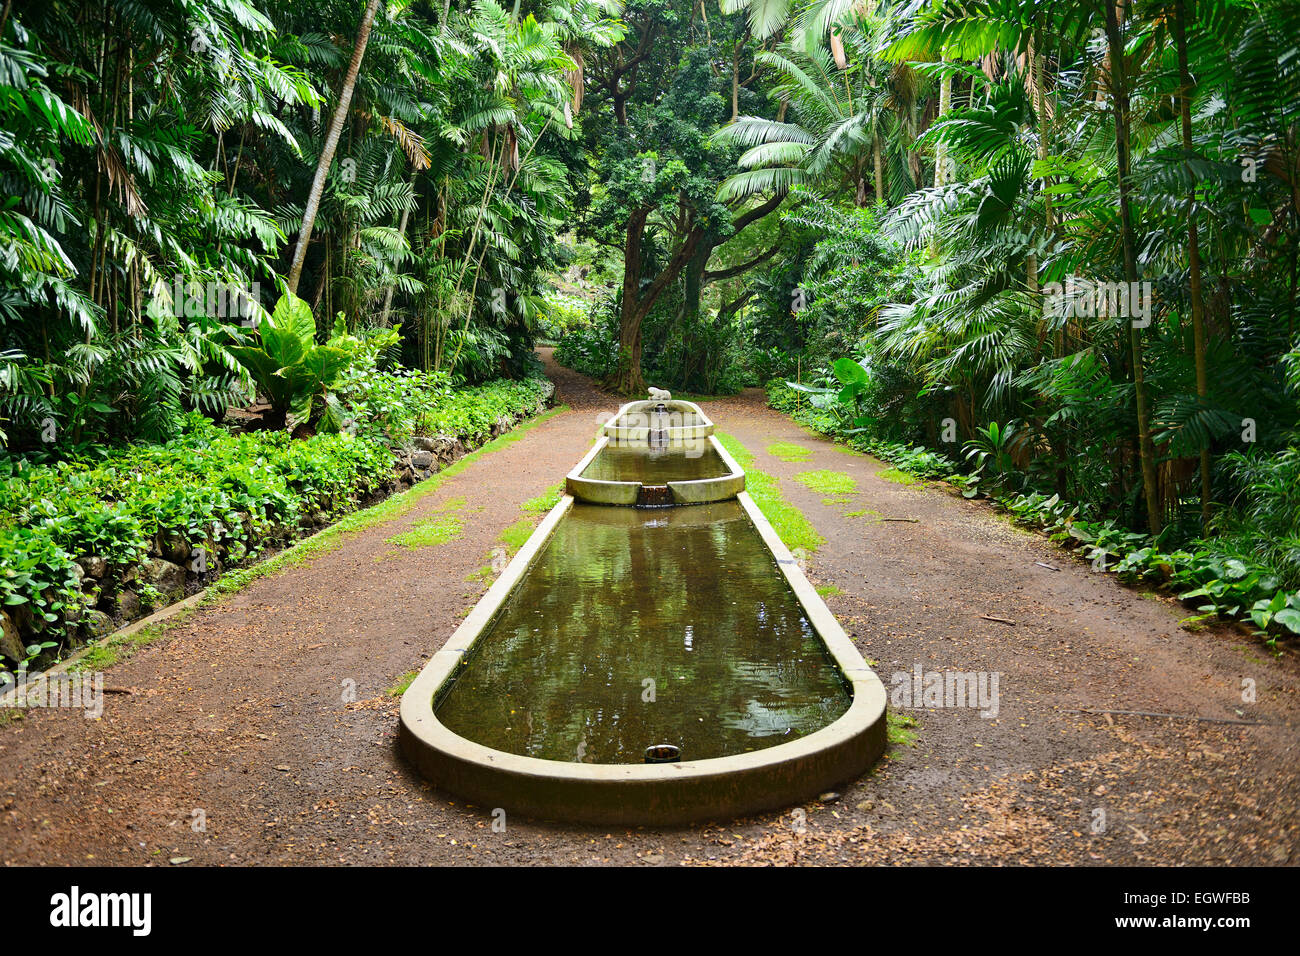 water feature in allerton national tropical botanical garden within